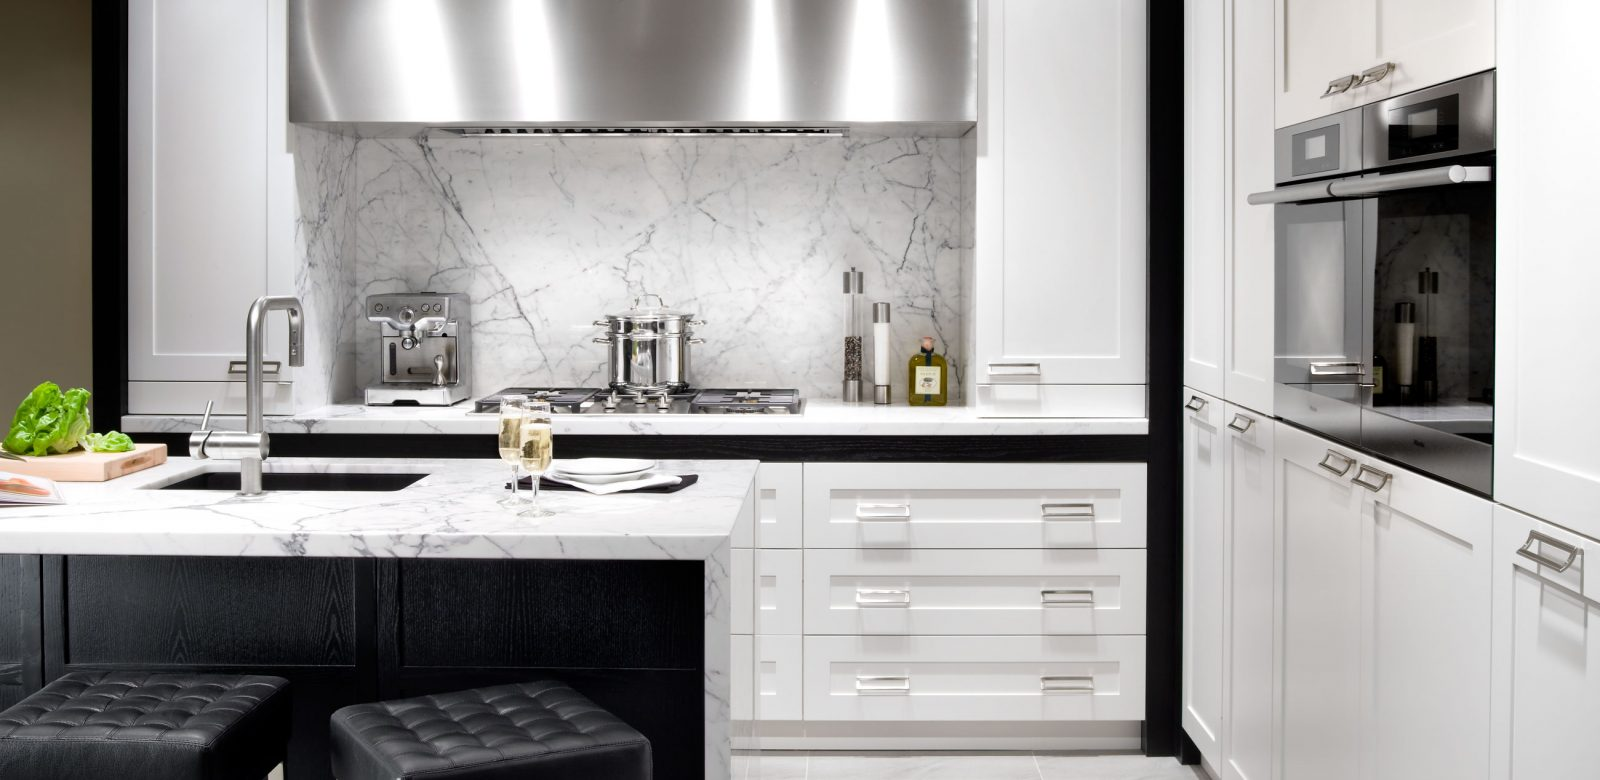 Contact US >> Mission Kitchen | Paris Kitchens | Kitchen and Bath Cabinetry Toronto